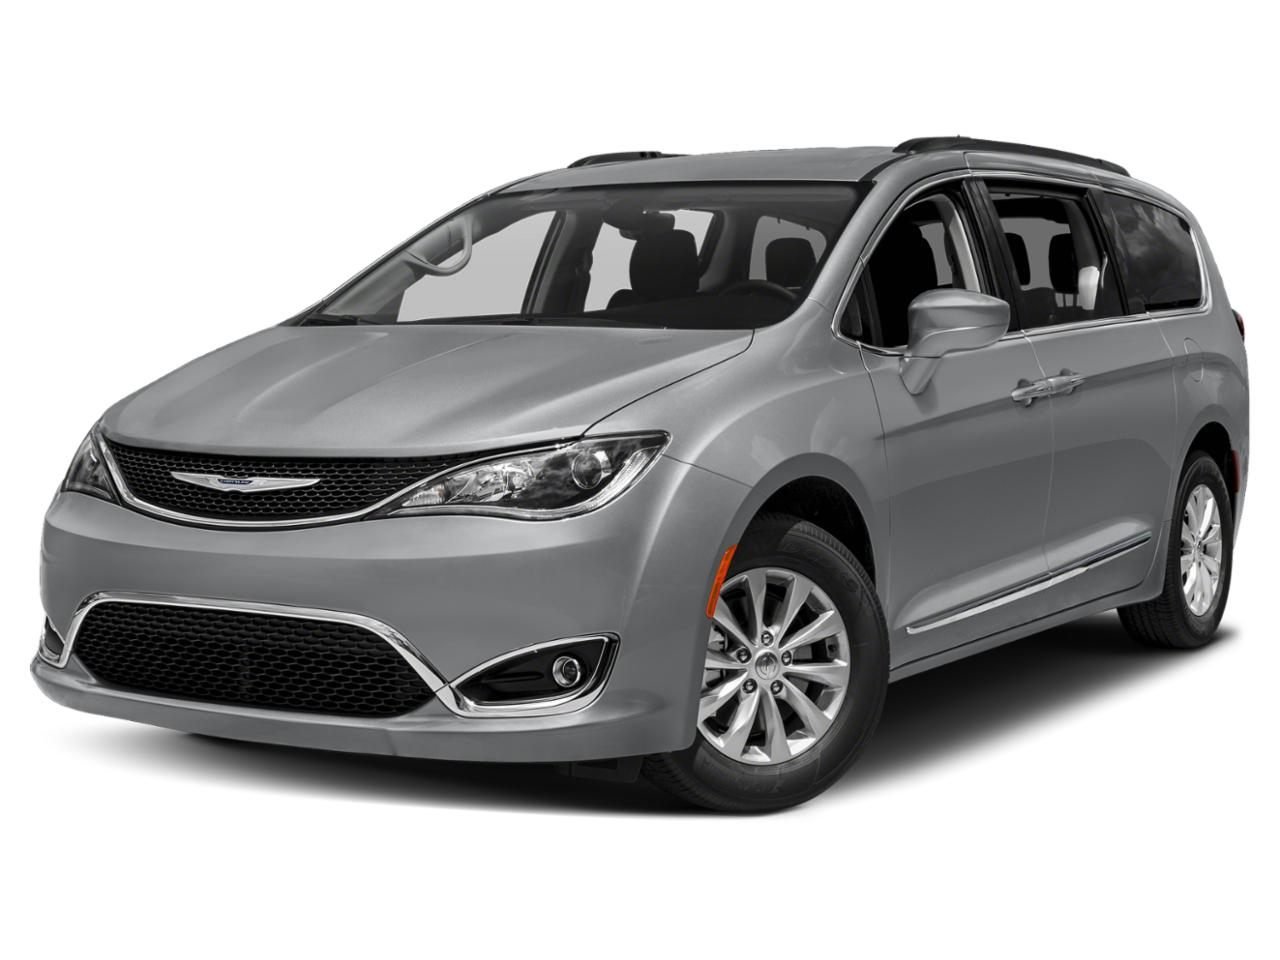 2018 Chrysler Pacifica Vehicle Photo in Westlake, OH 44145